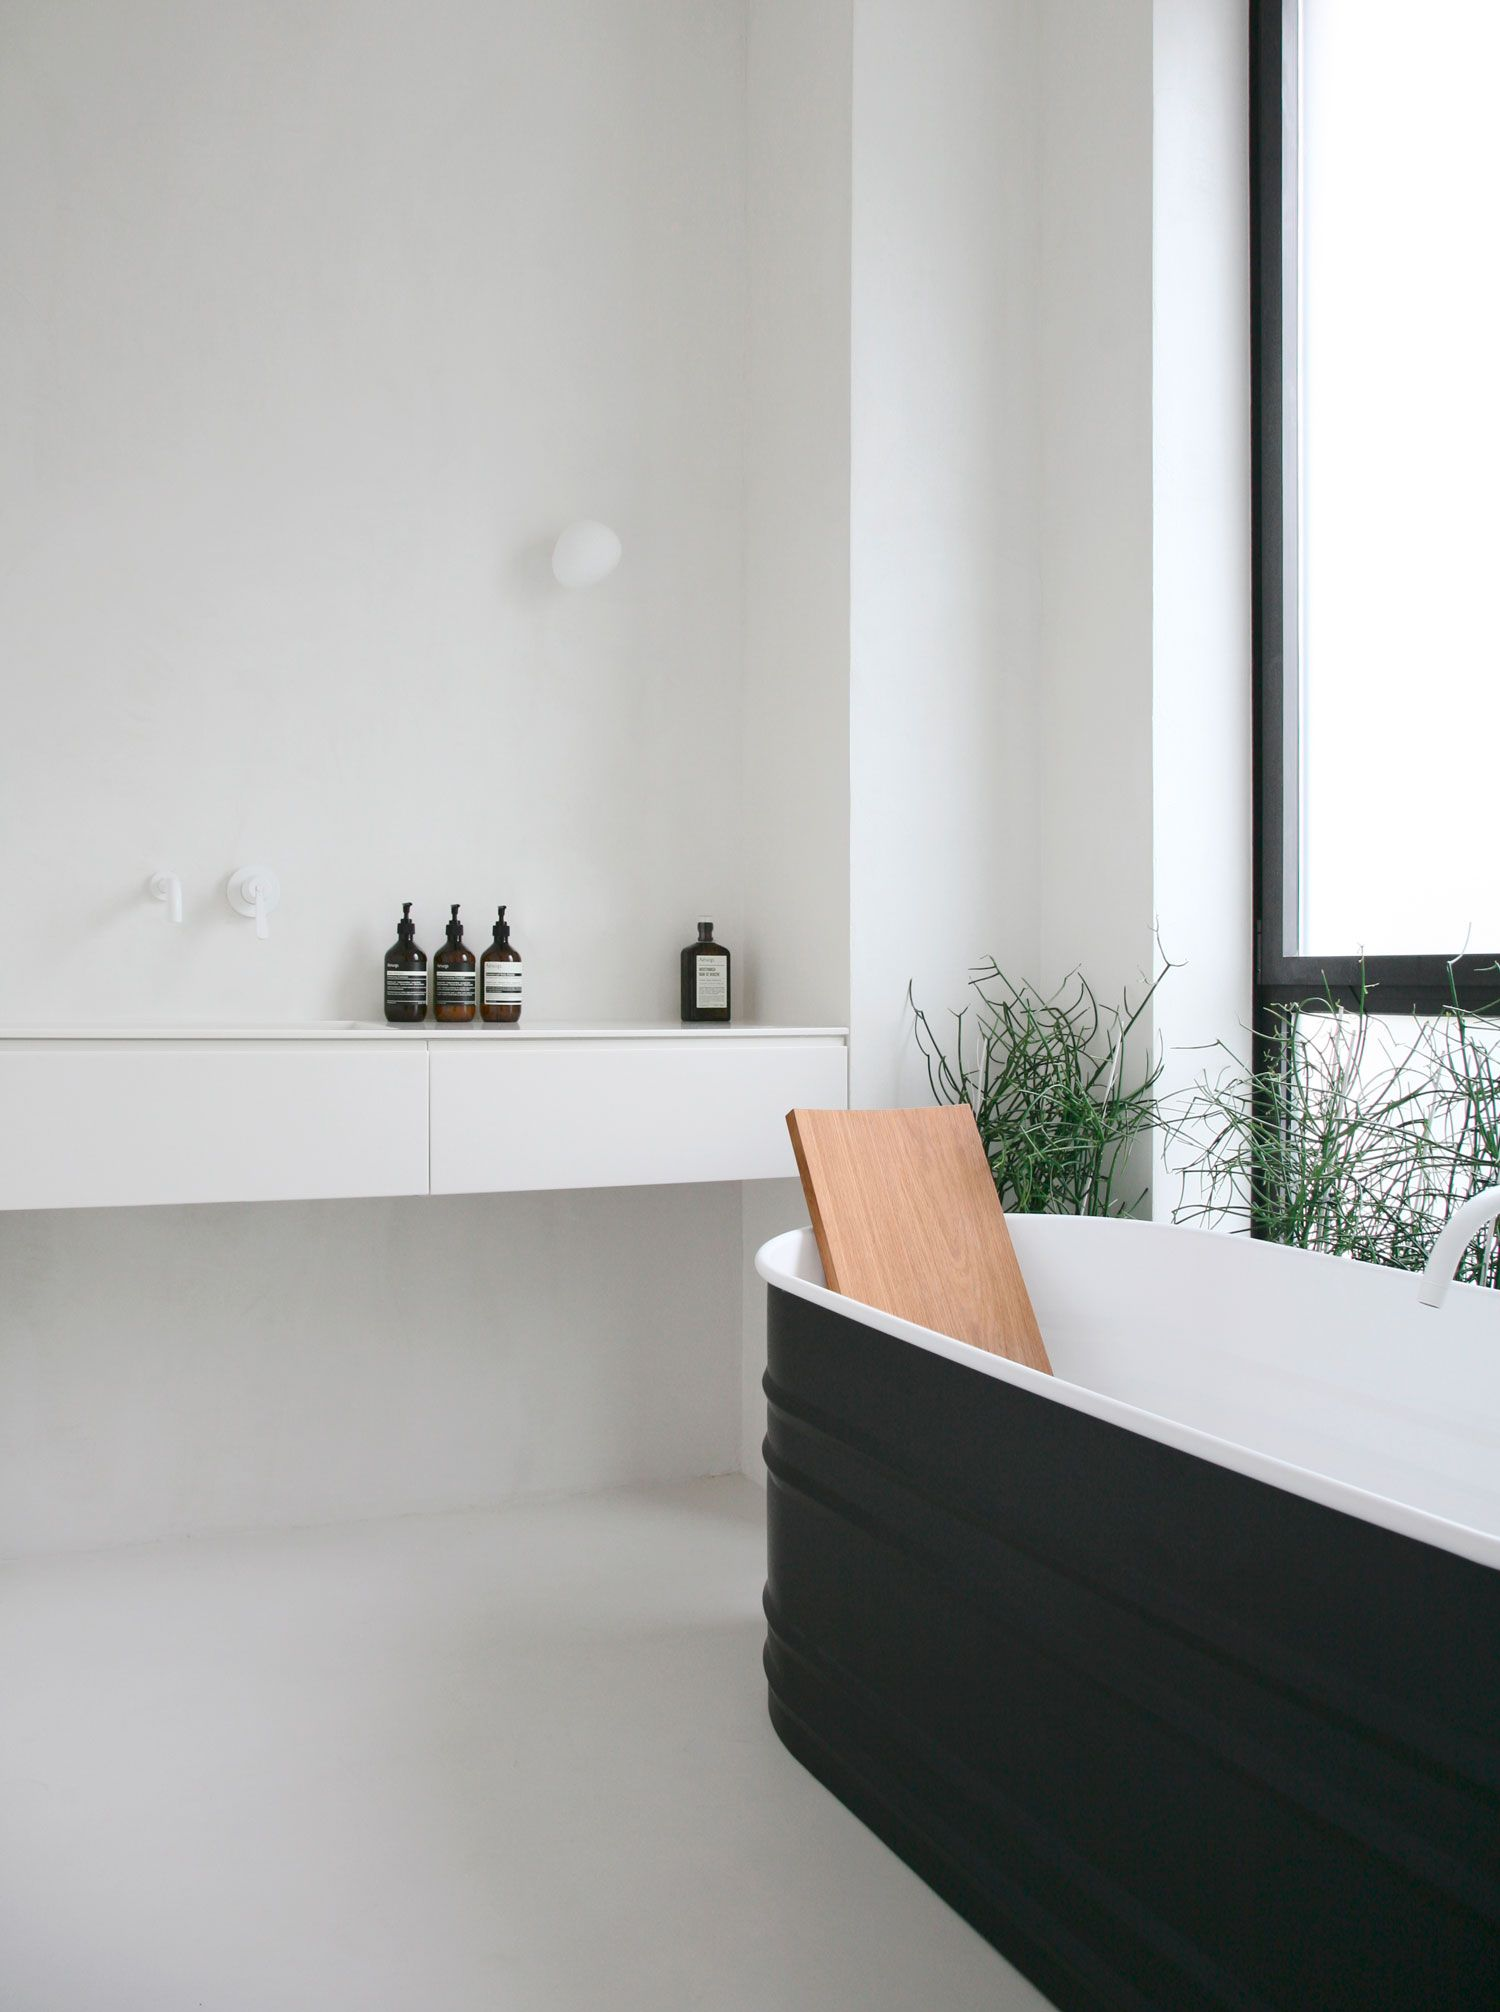 Get Your Zen On With This Minimalist Bathroom Design By Rue Du Japon Toulouse